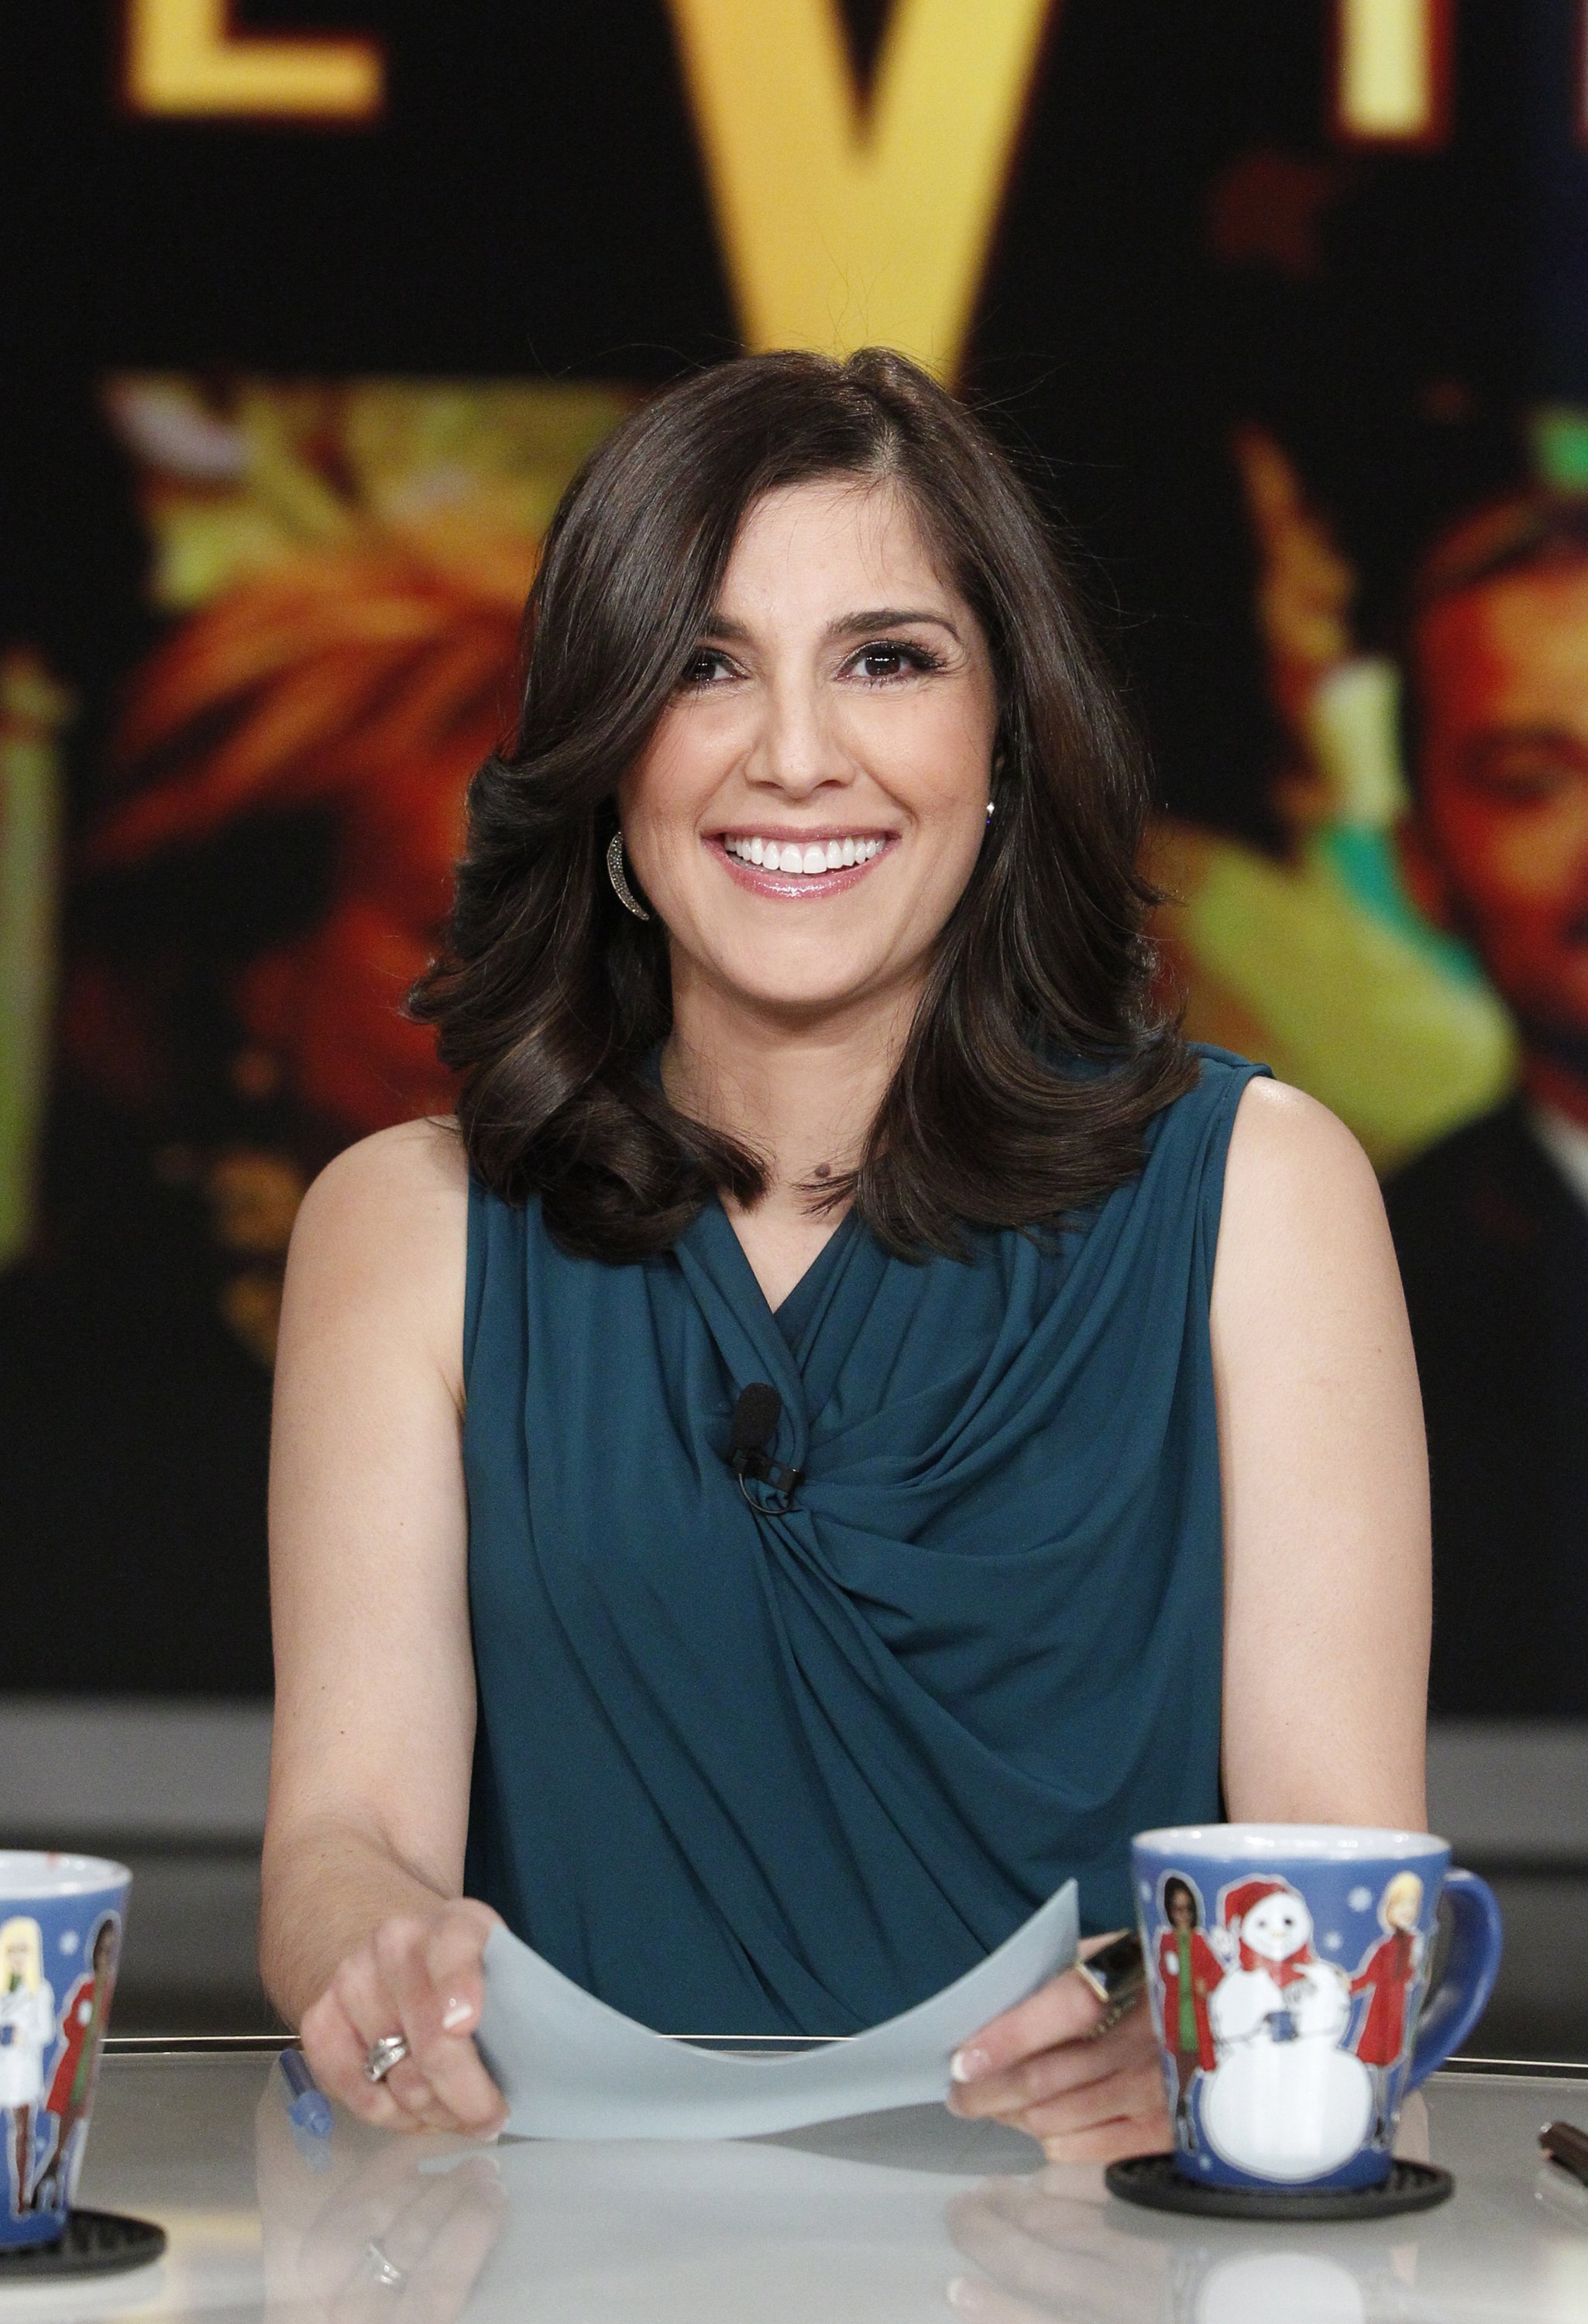 """Rachel Campos-Duffy, who is married to Congressman Sean Duffy of Wisconsin, is a guest co-host of """"THE VIEW,"""" 3/5/14 